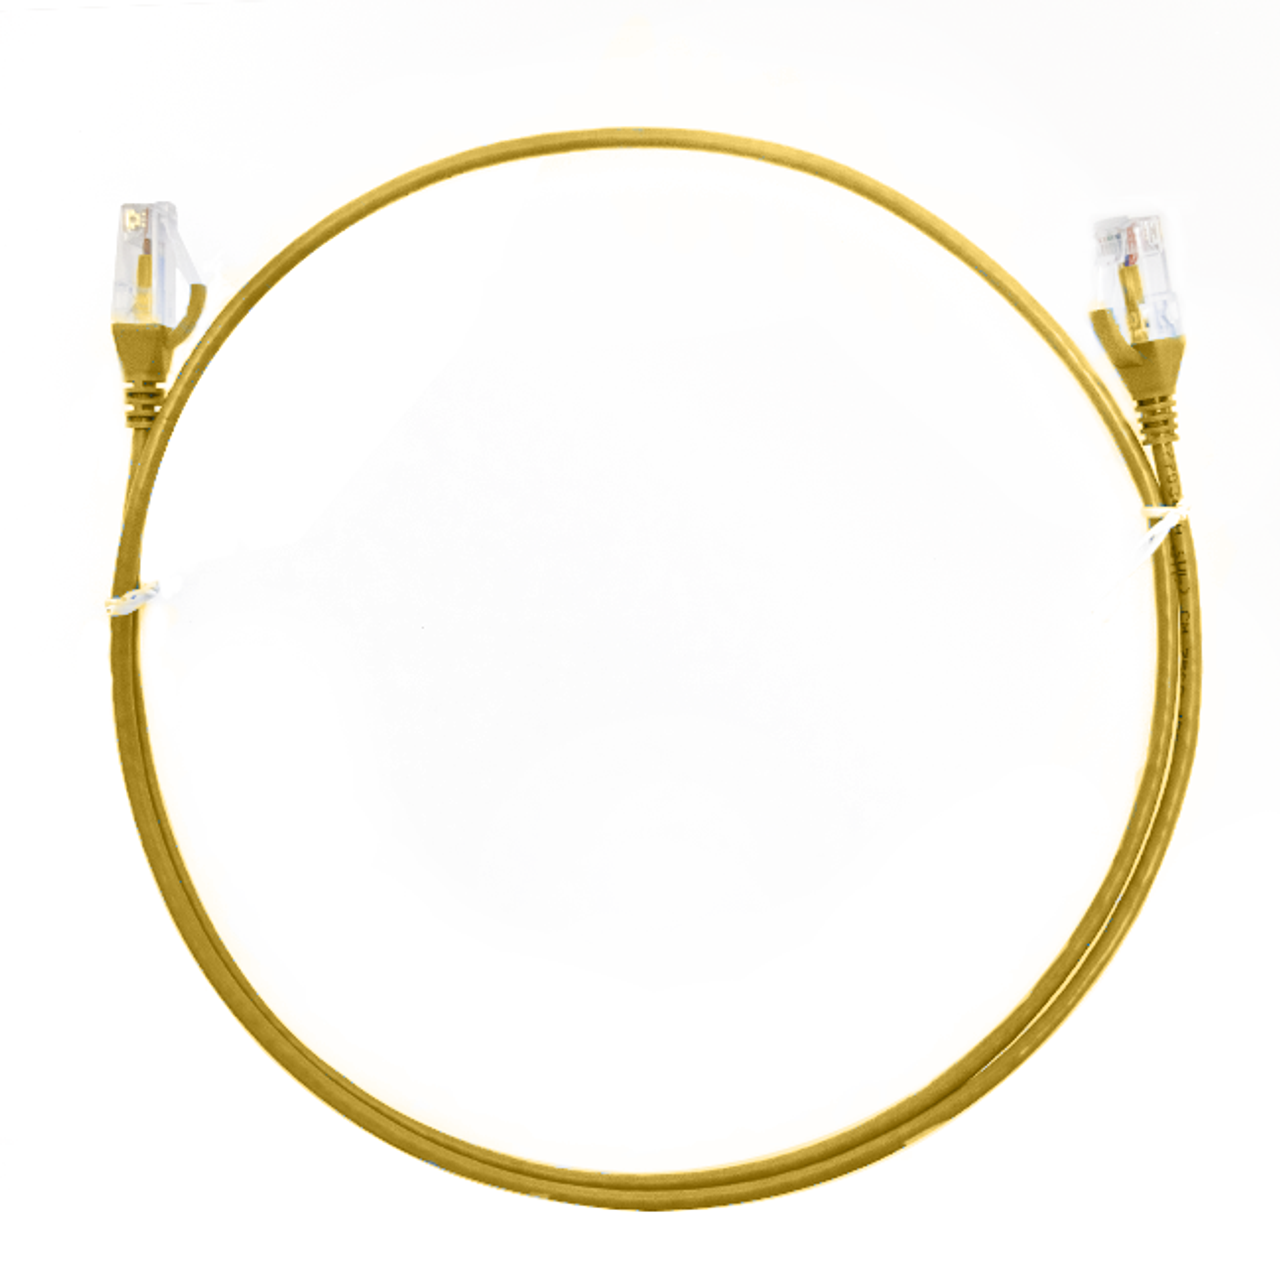 Image for 0.25m Cat 6 Ultra Thin LSZH Ethernet Network Cables: Yellow CX Computer Superstore